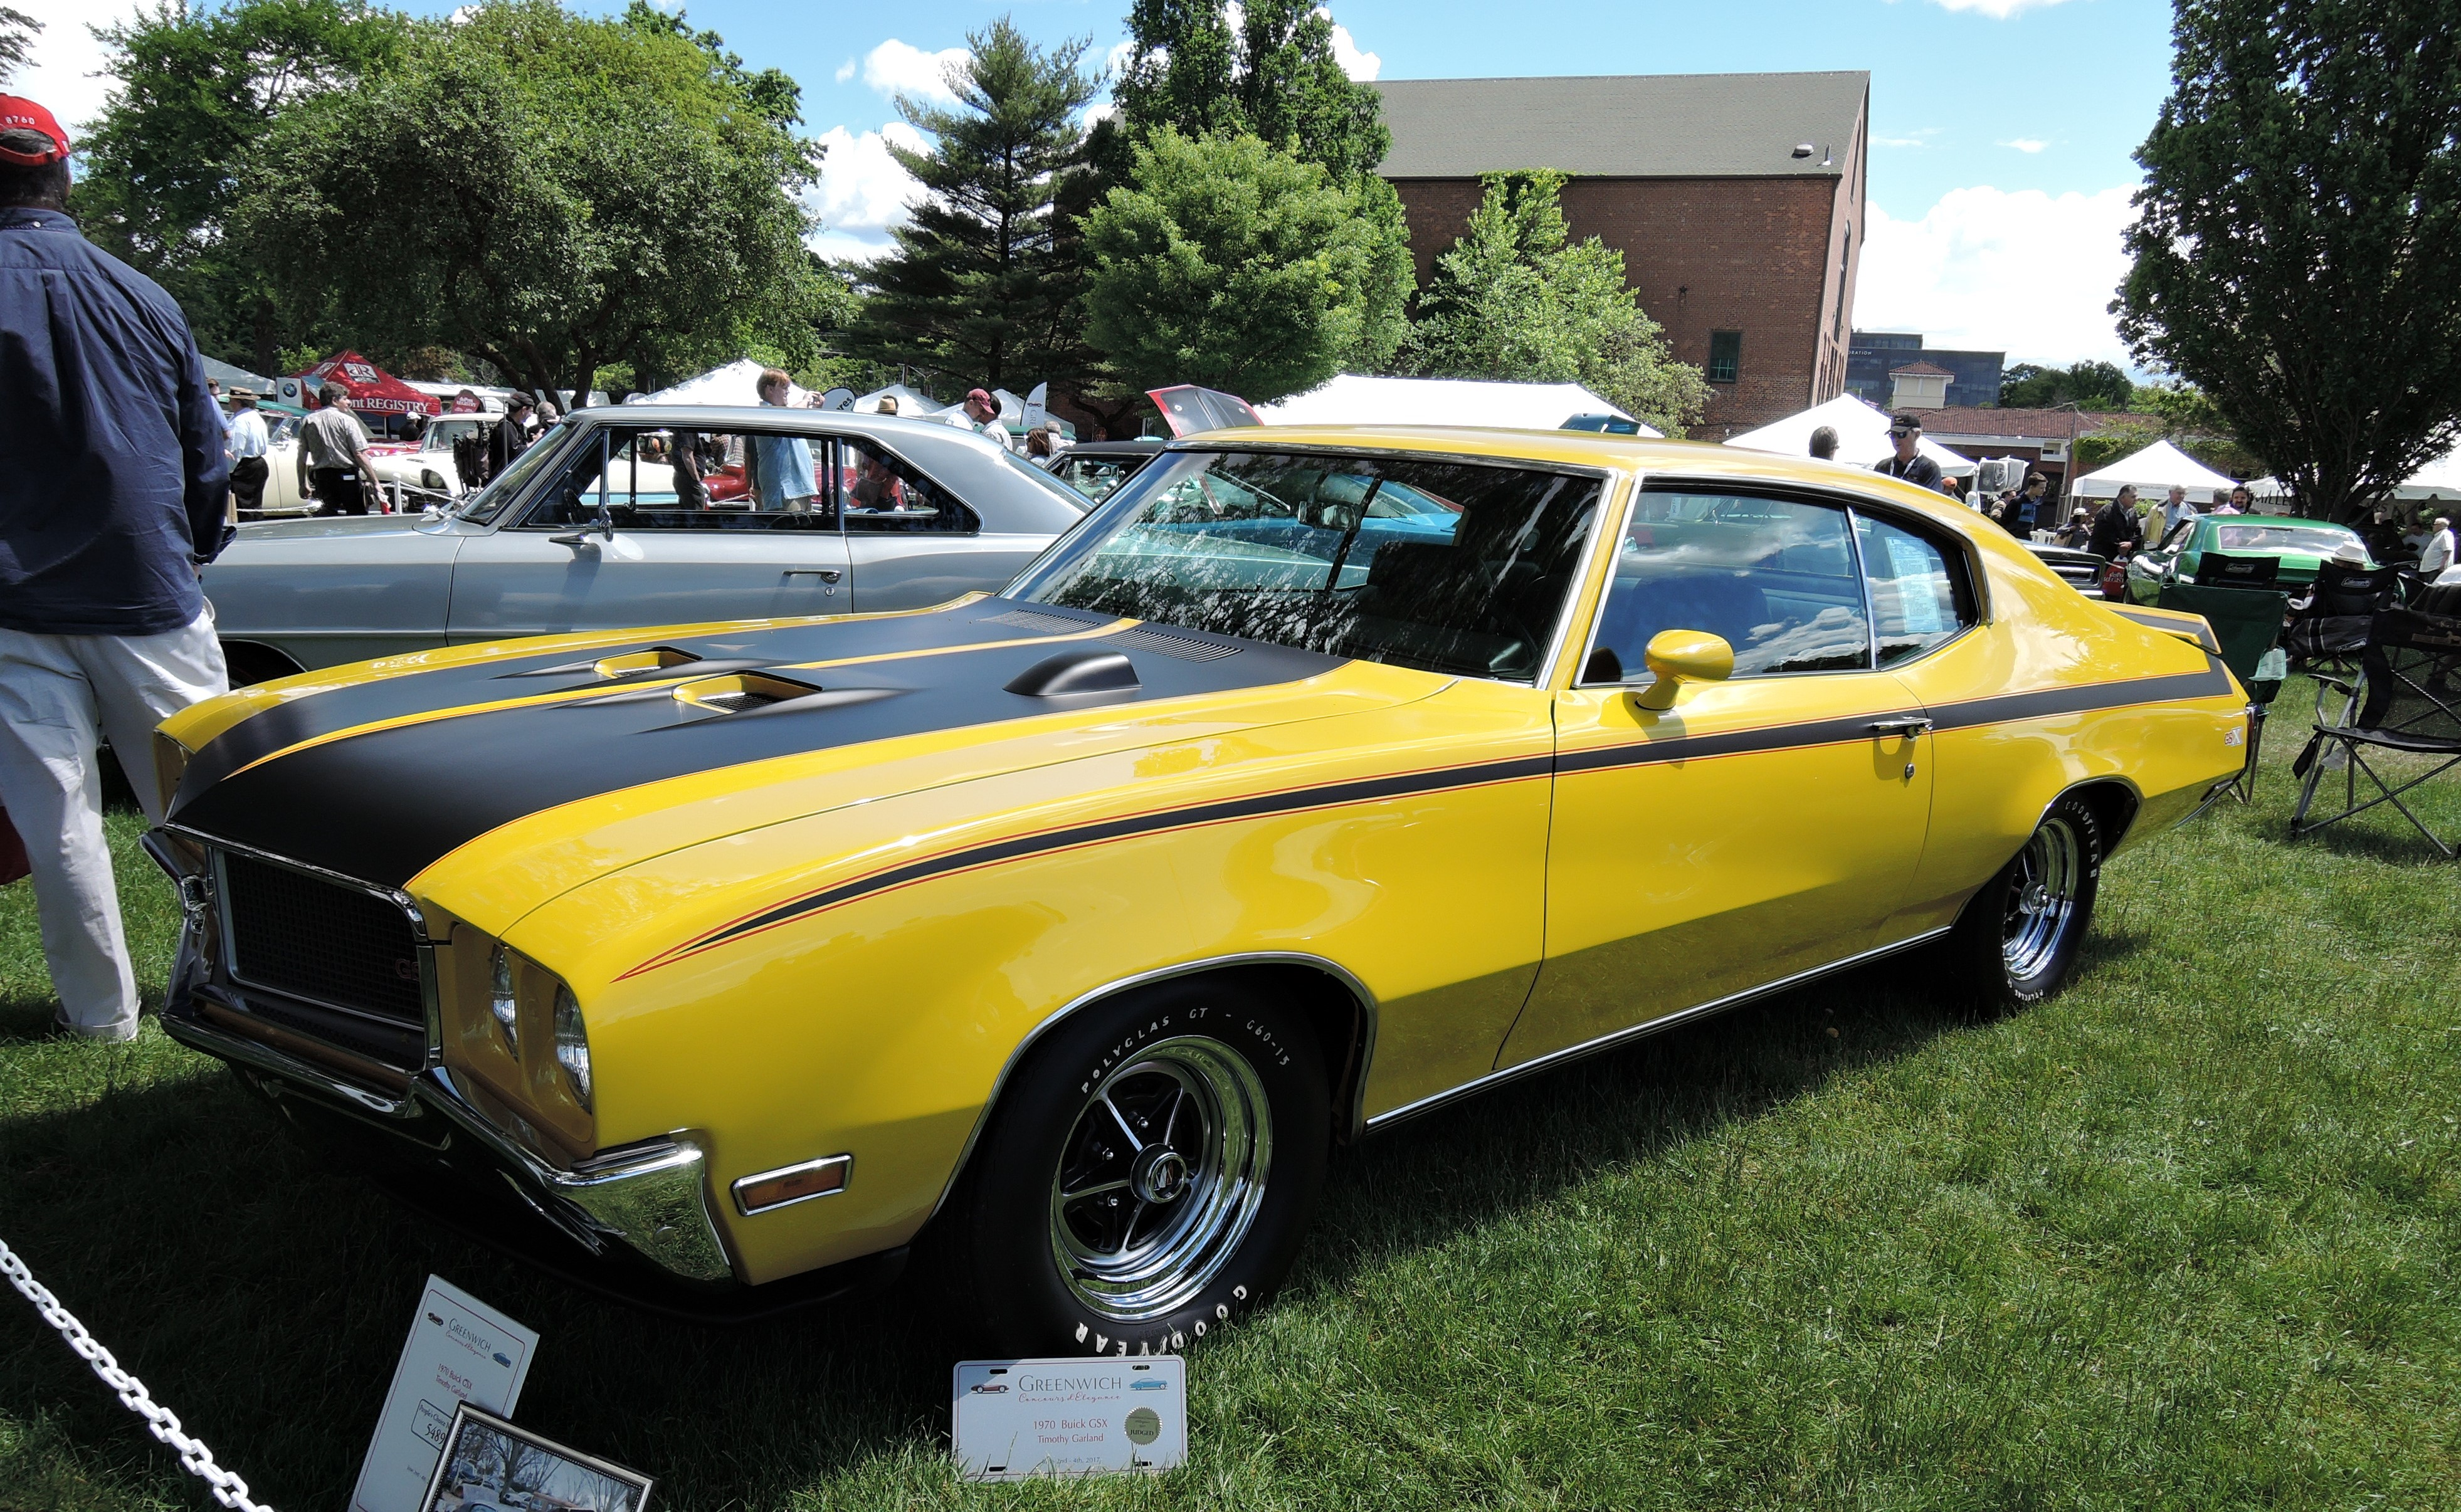 yellow 1970 Buick GSX - Greenwich Concours d'Elegance 2017